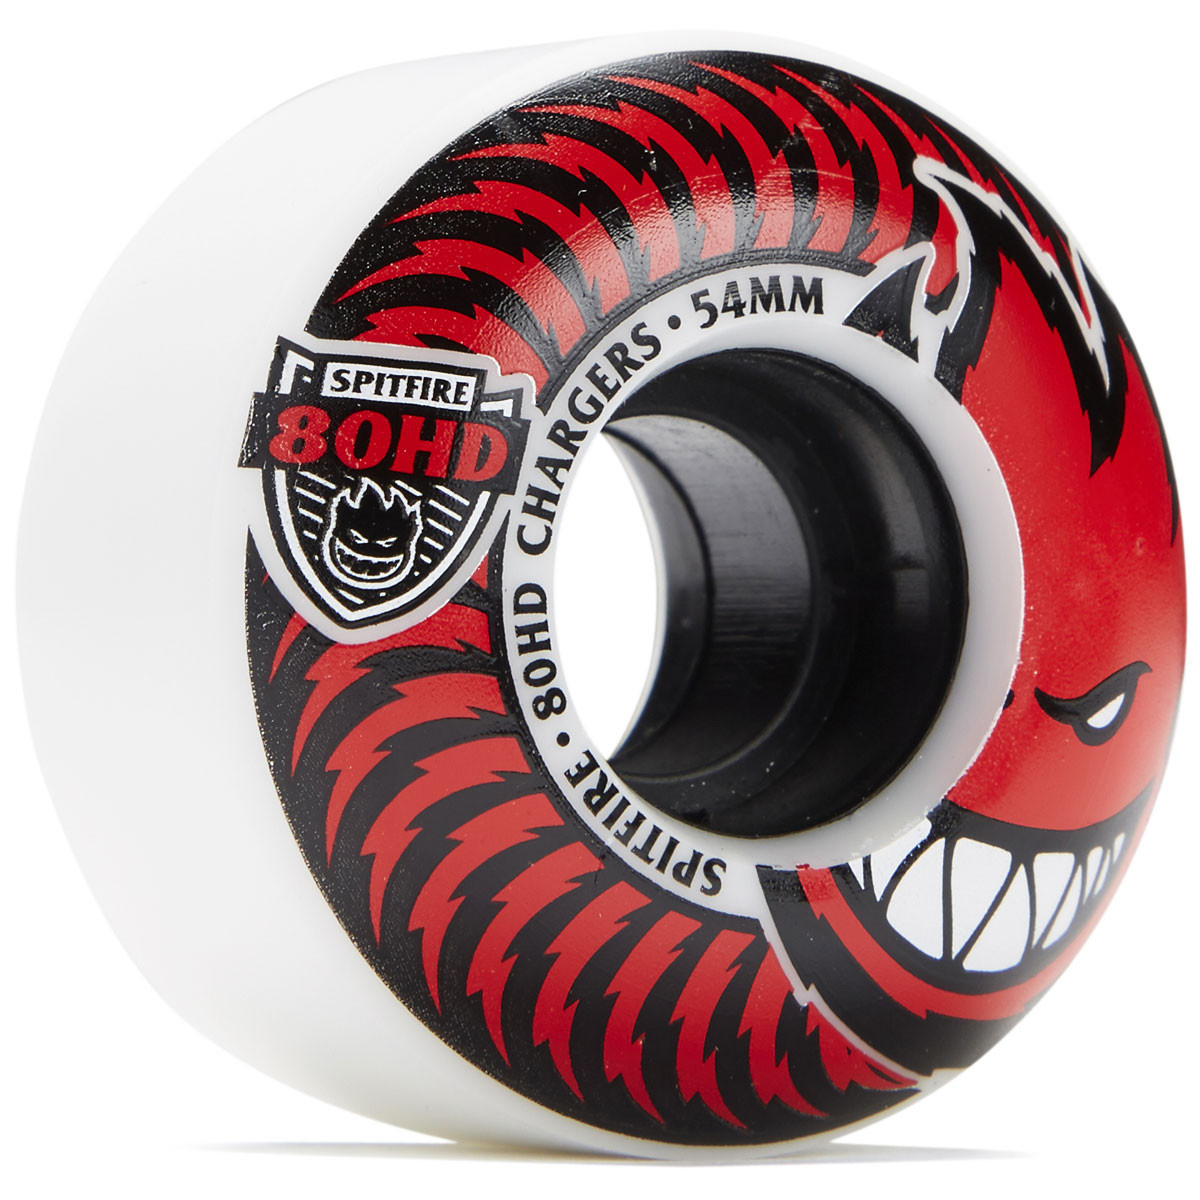 spitfire 80hd chargers 58mm classic wheels